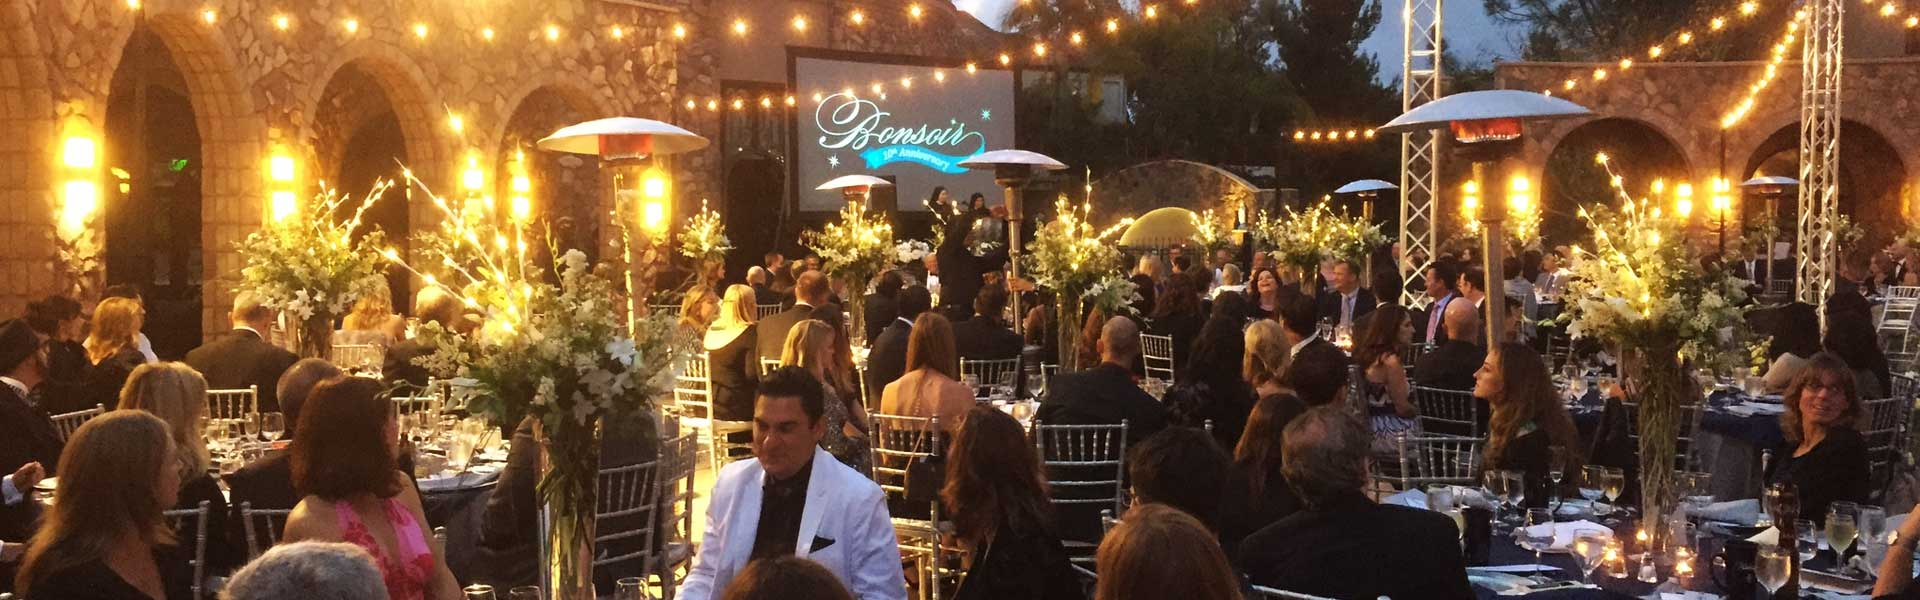 Corporate Event - Outside Location